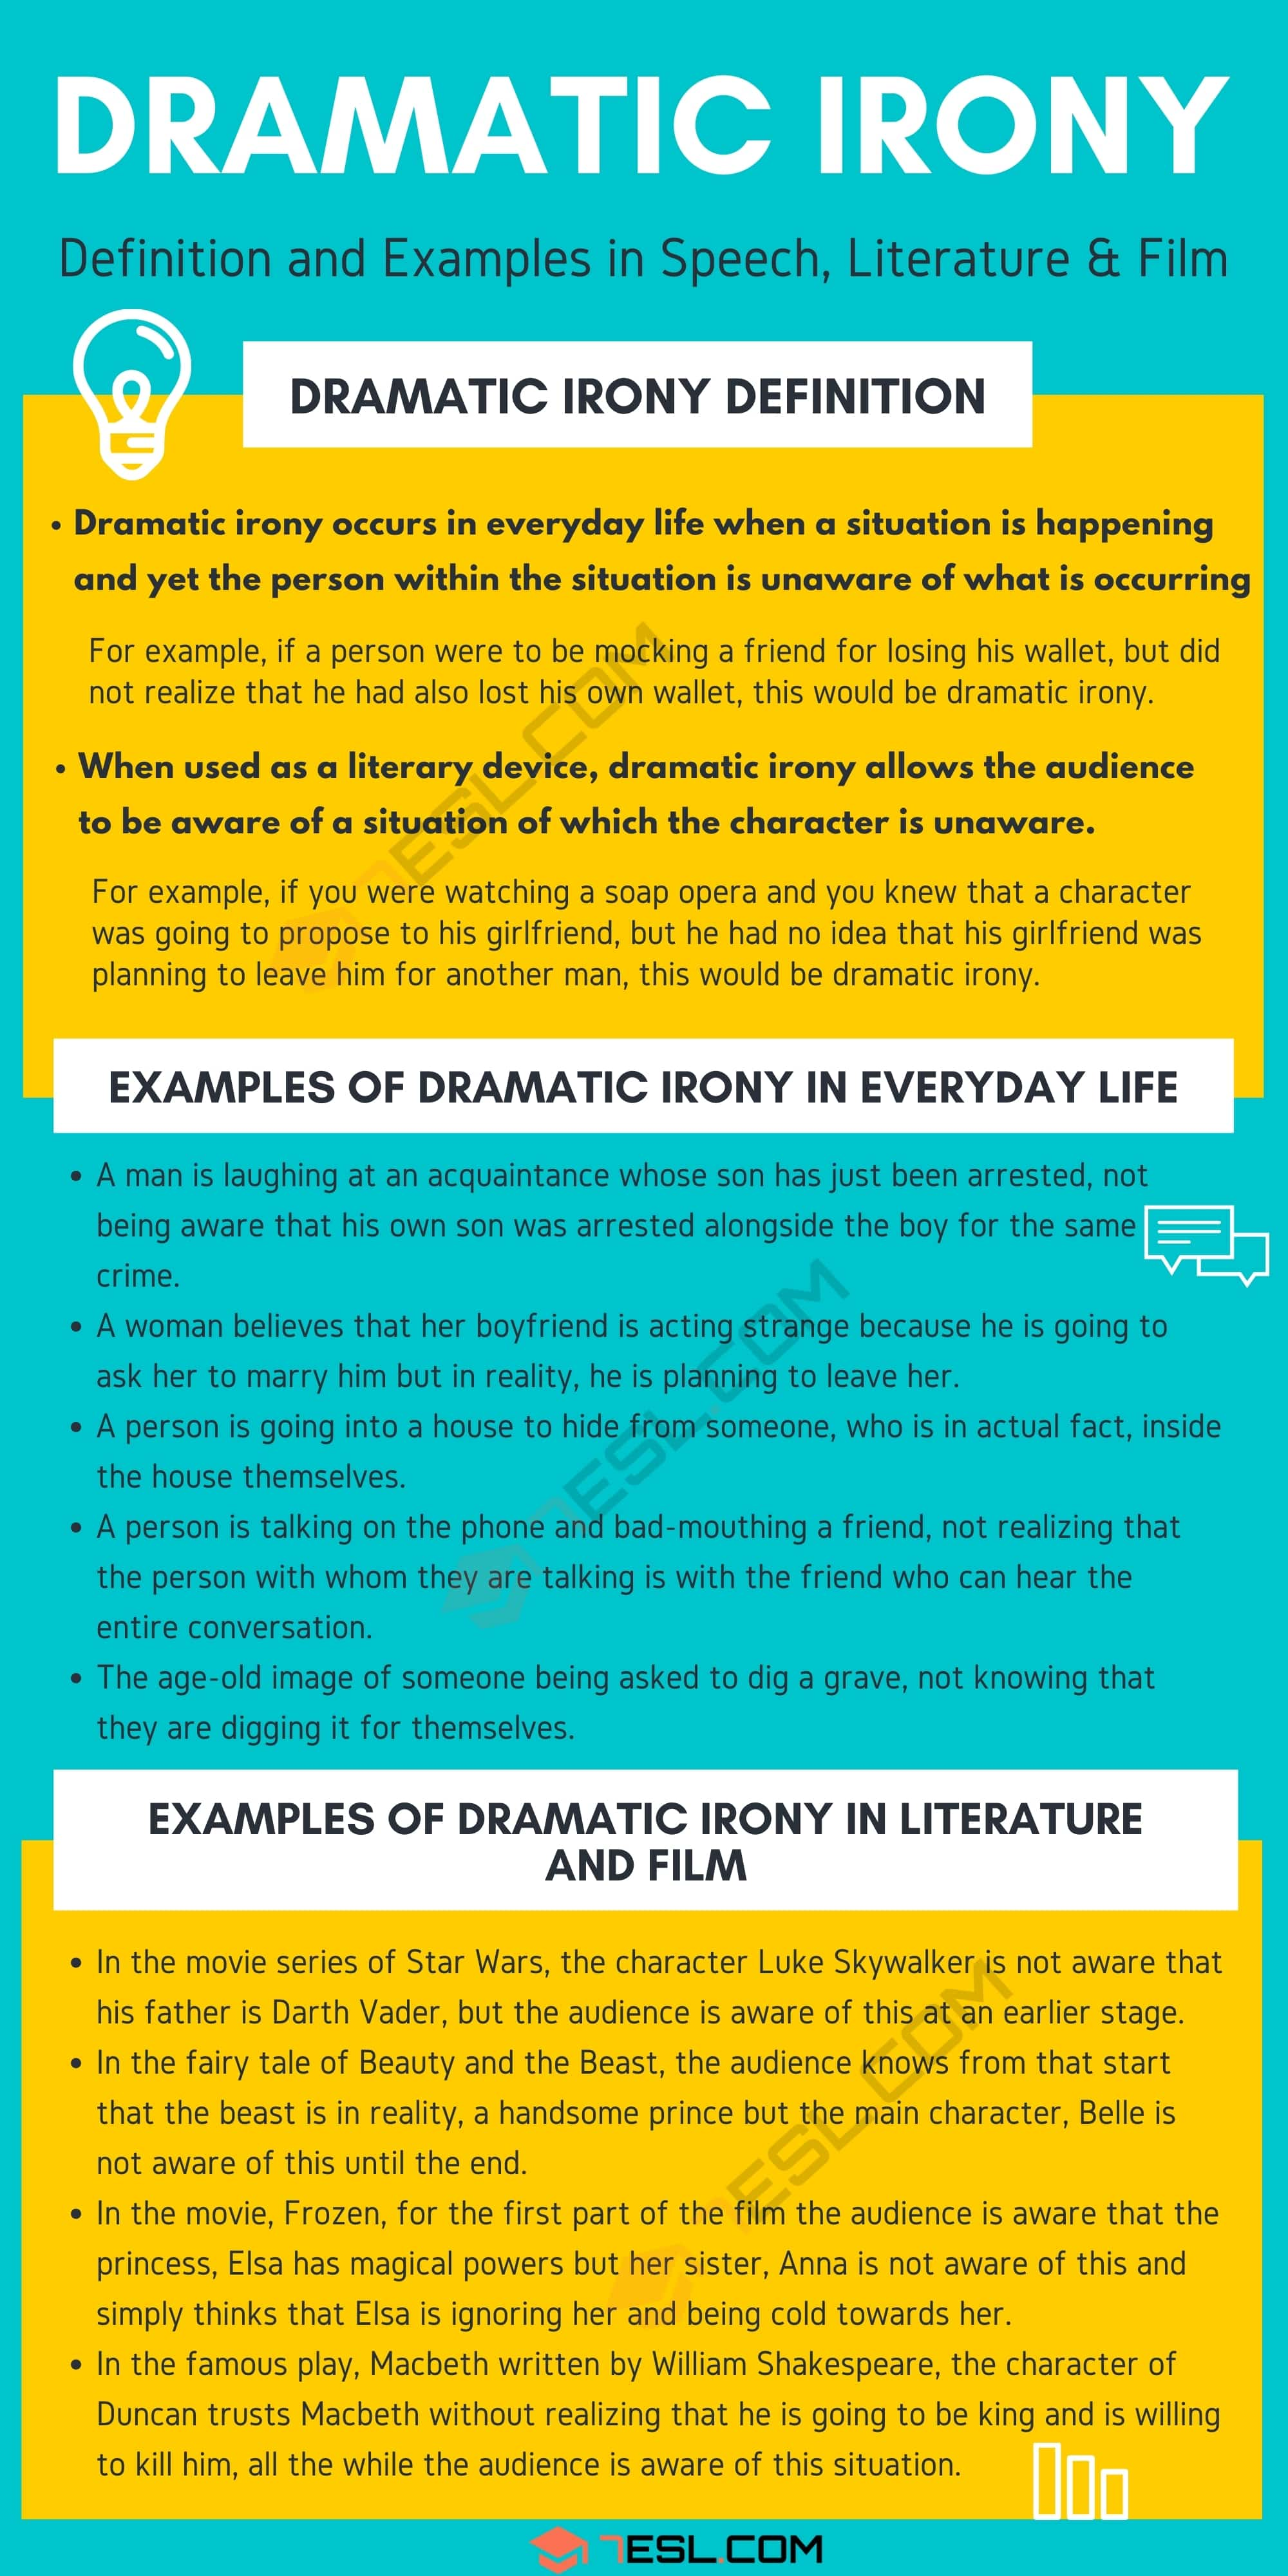 Dramatic Irony: Definition and Examples in Speech, Literature and Film